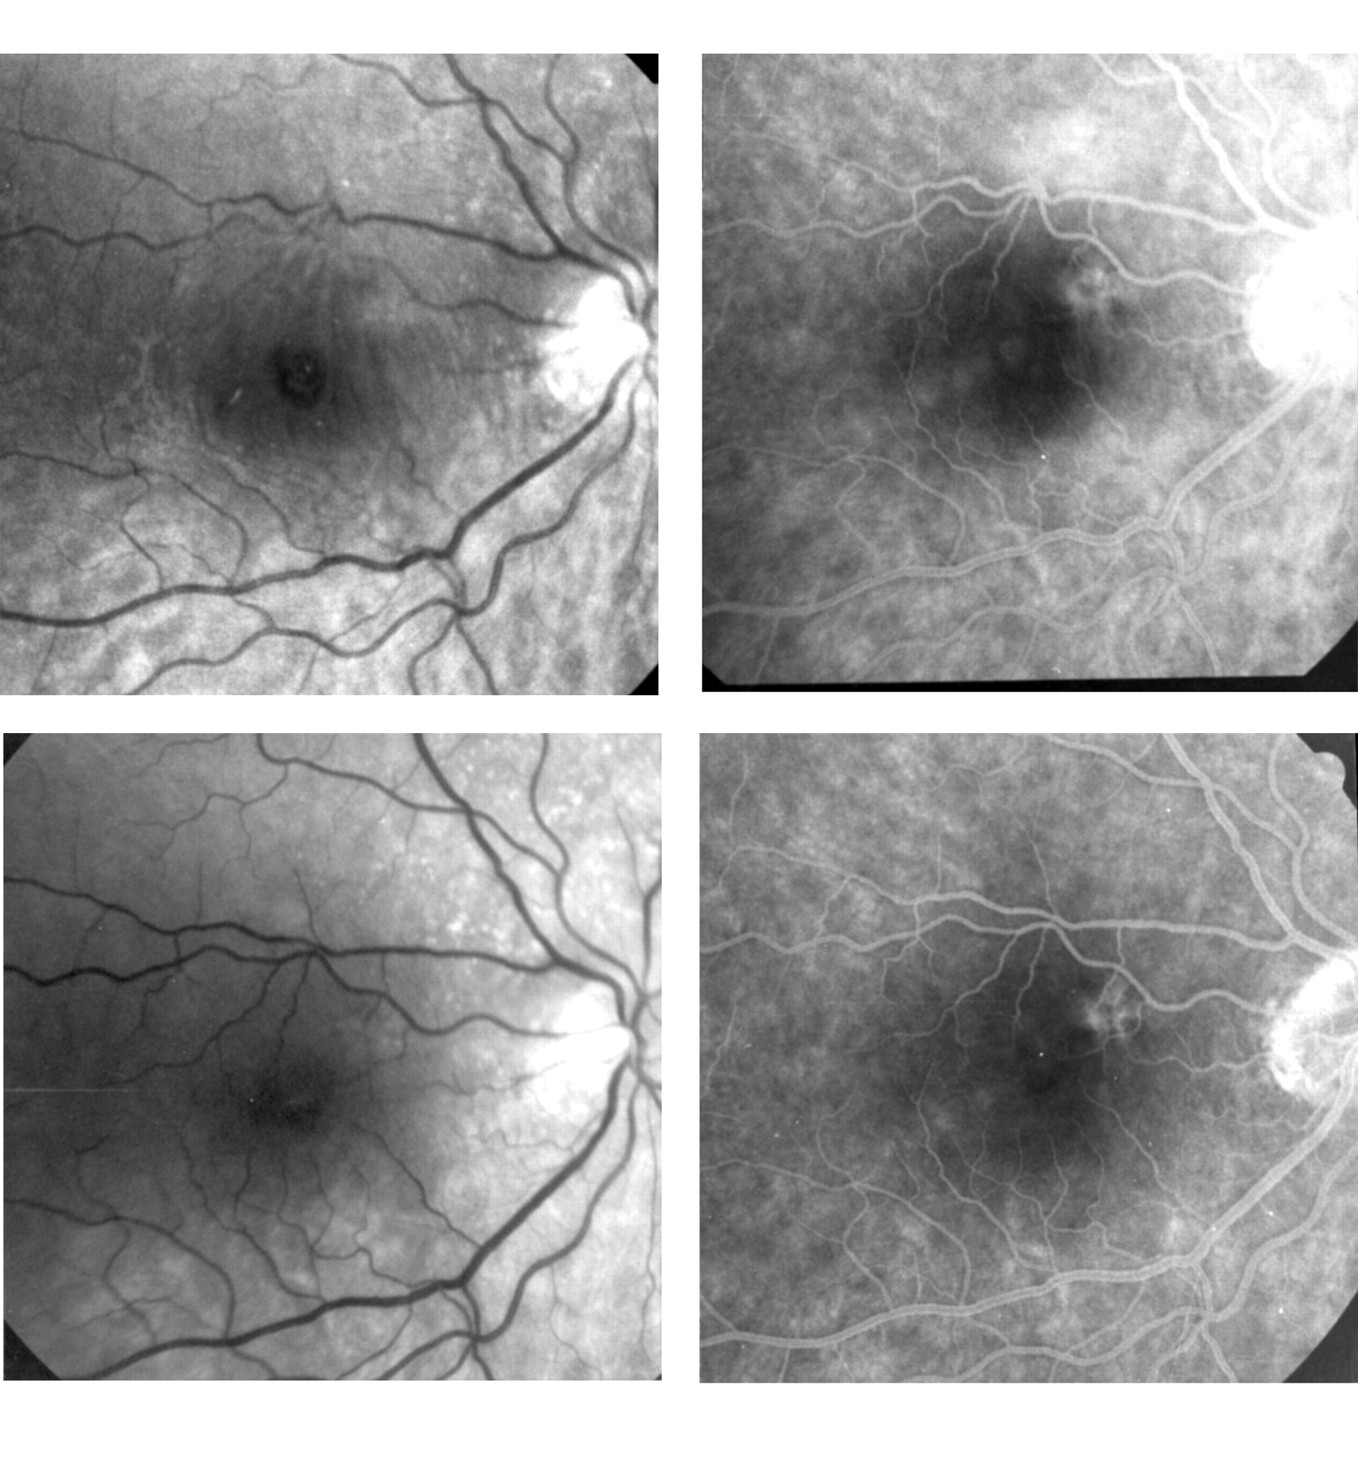 Late reopening of successfully treated macular holes